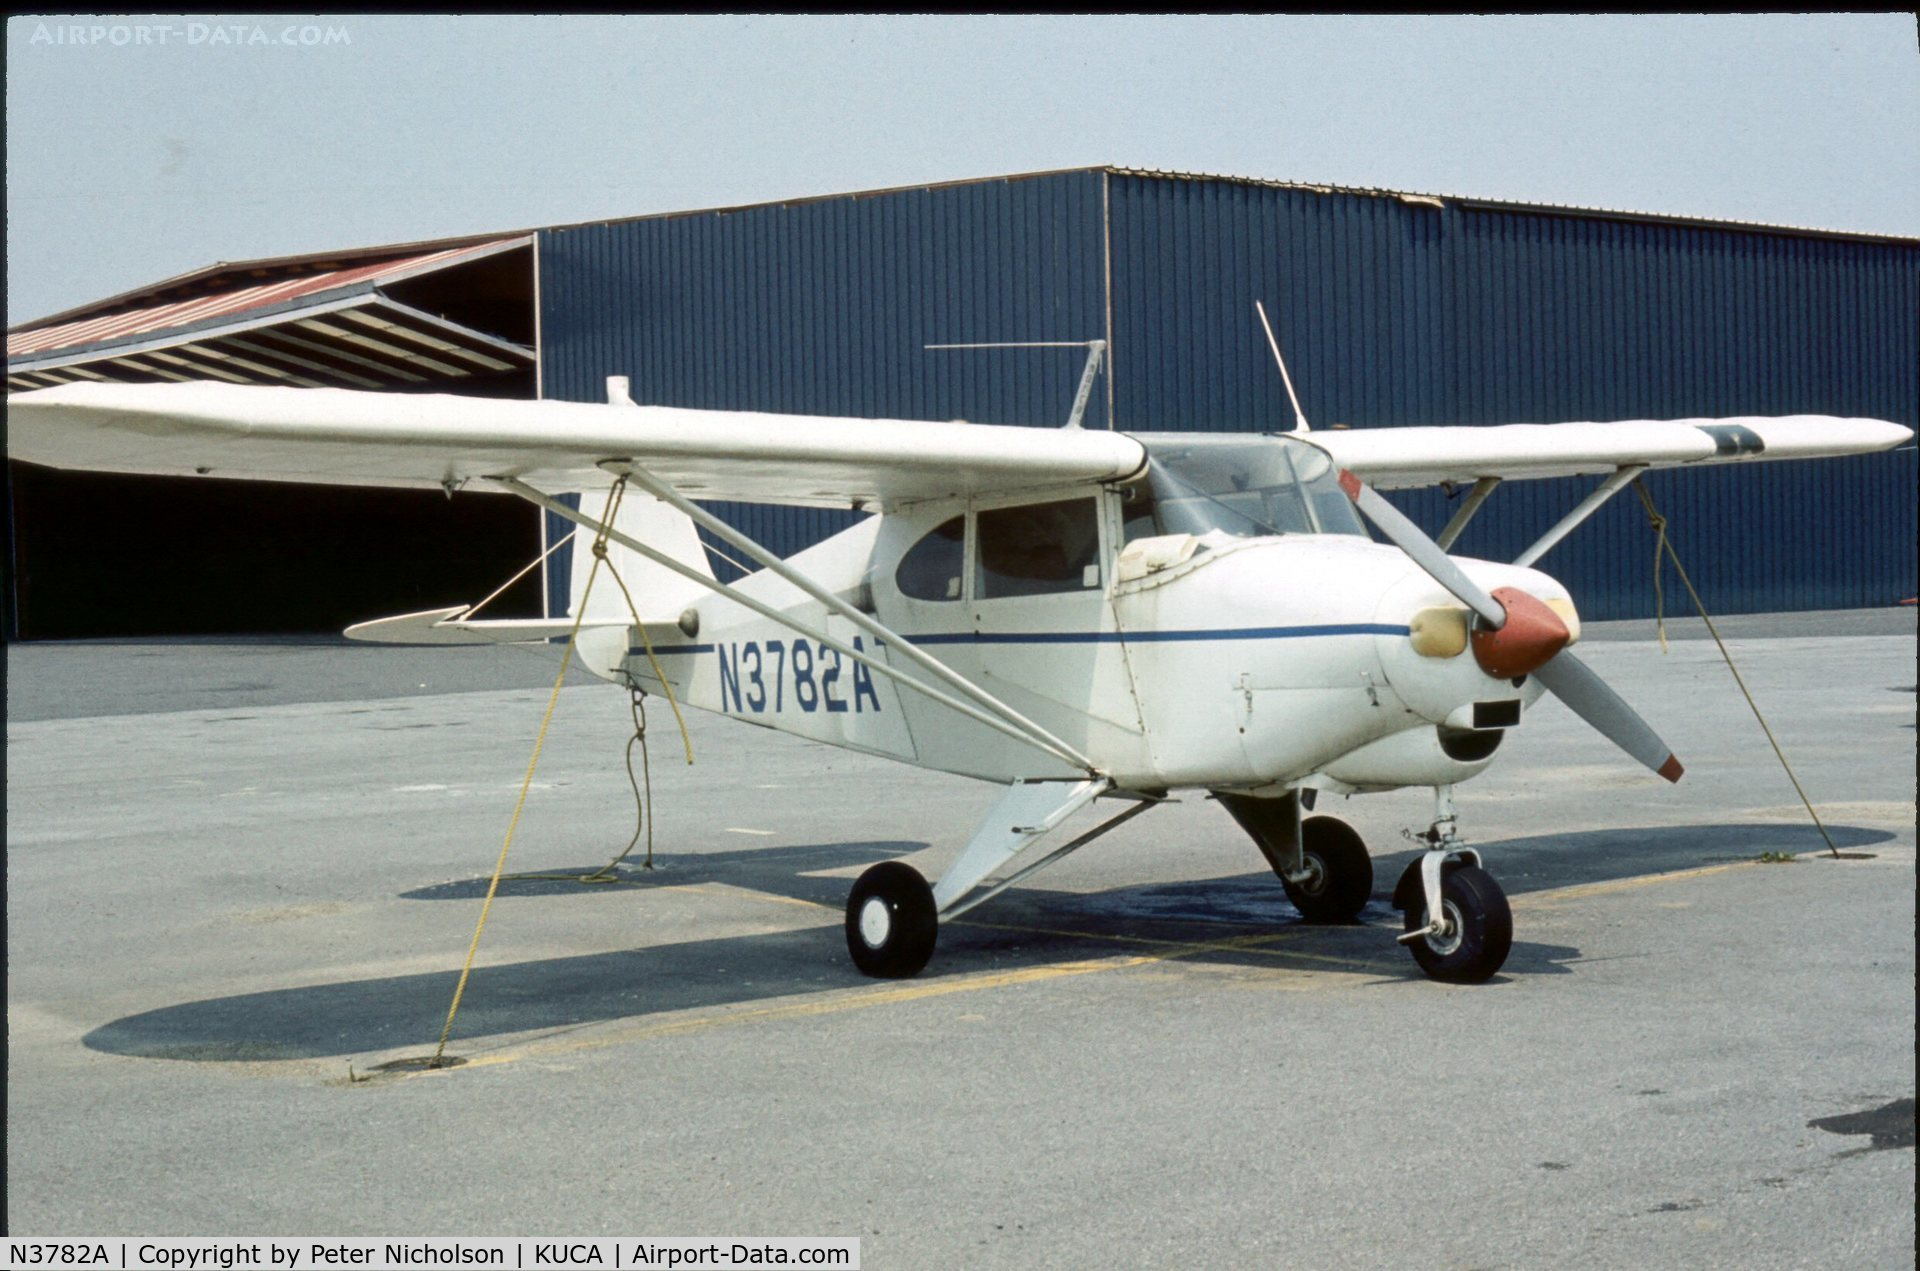 N3782A, 1953 Piper PA-22-135 Tri-Pacer C/N 22-2024, This Colt was seen at Oneida County Airport, New York State in 1976. Airport closed in 2007.